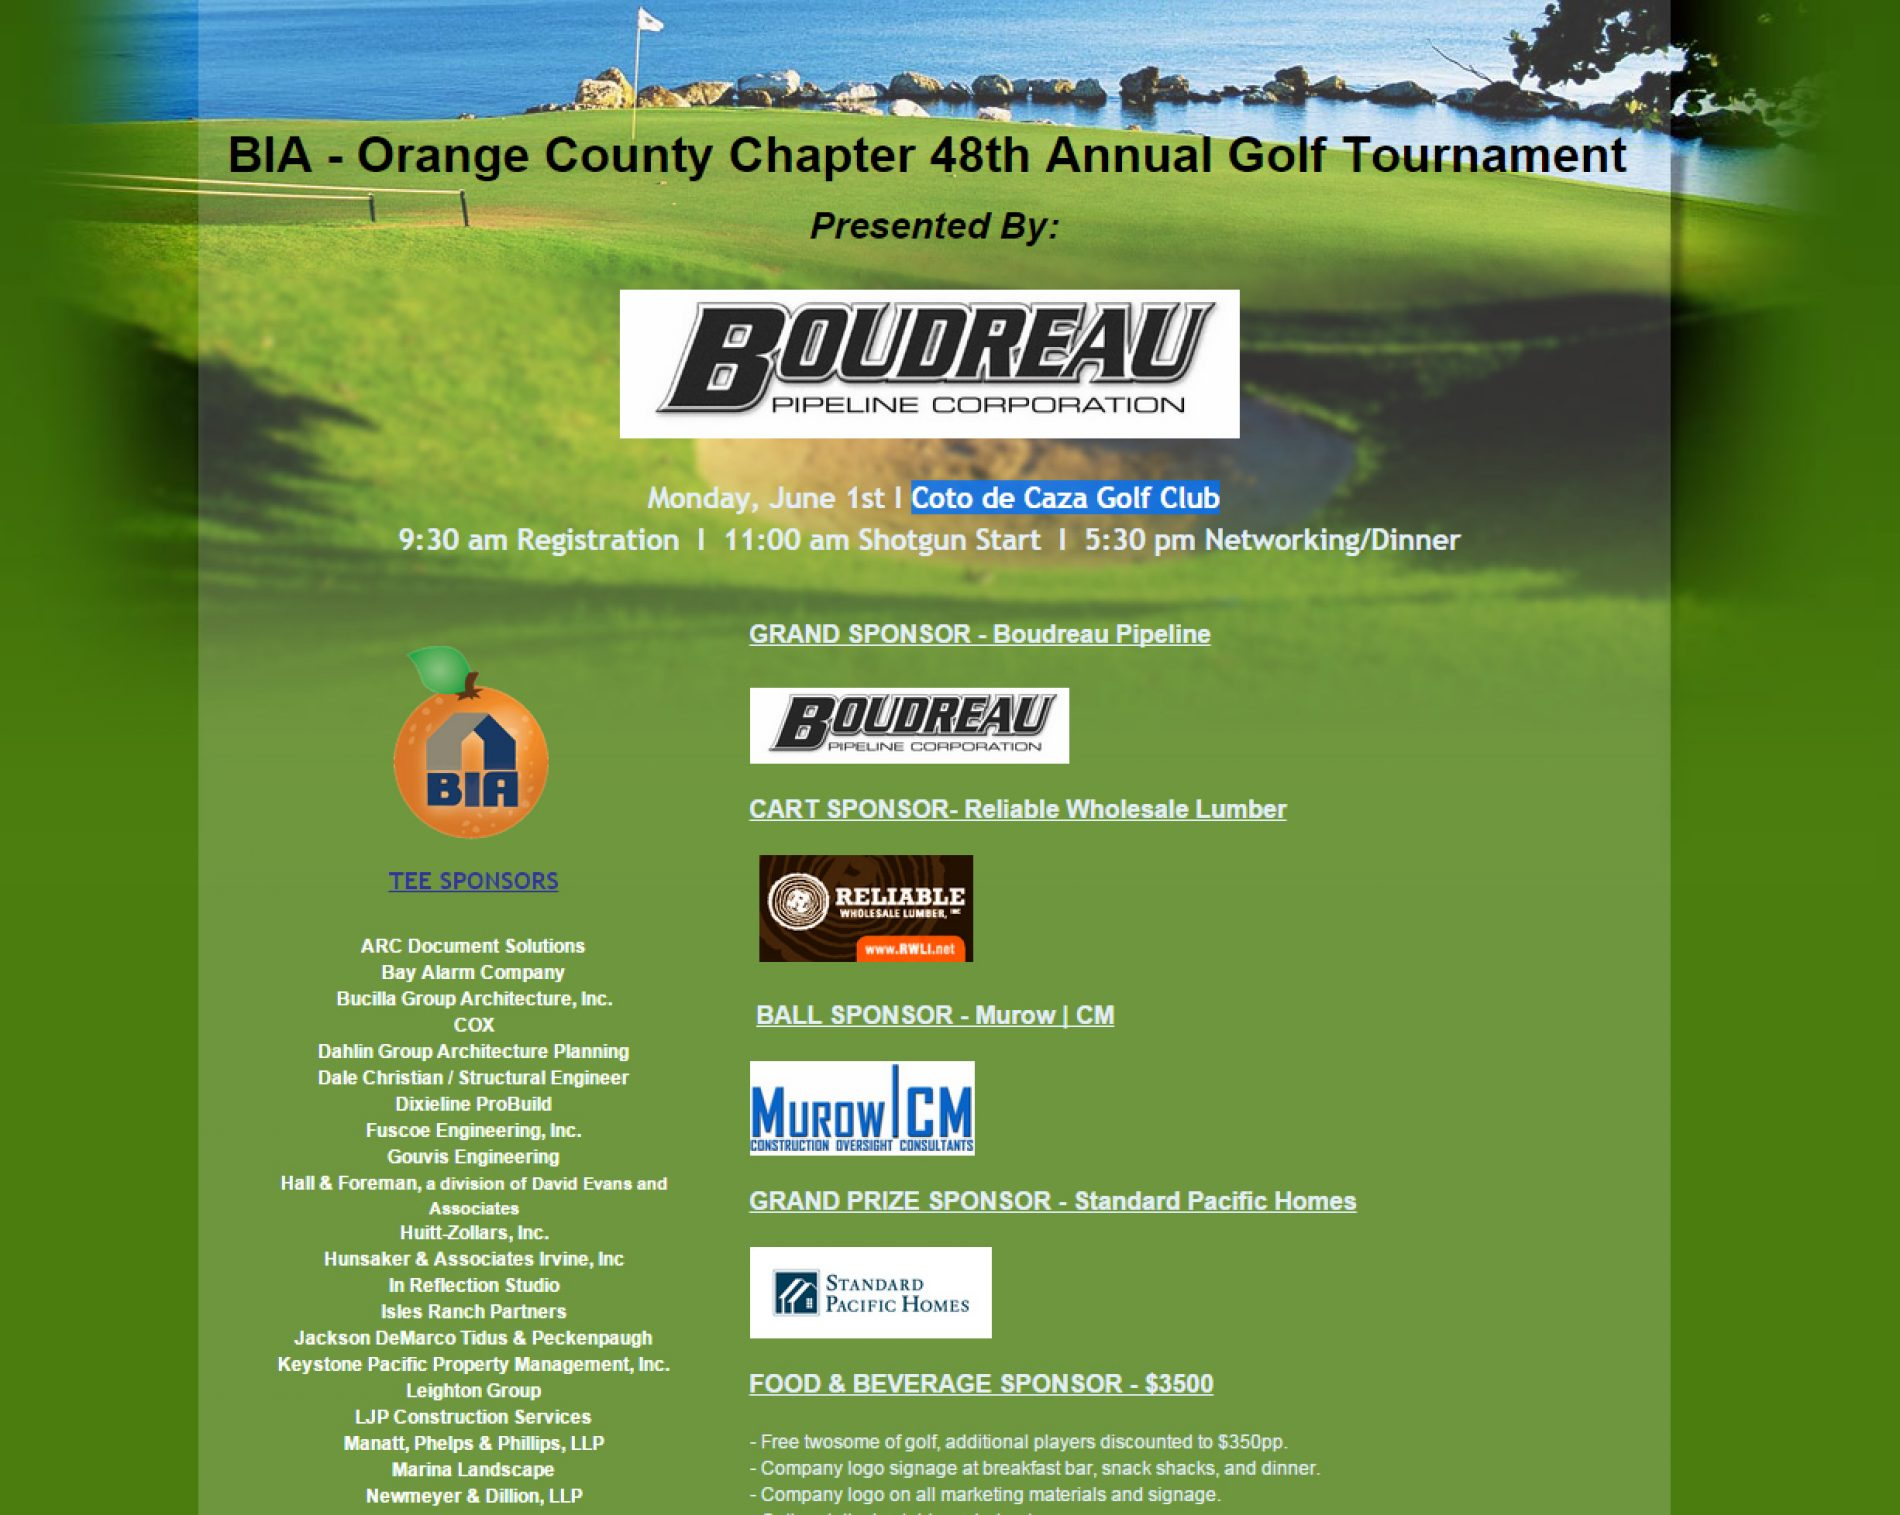 BIA/OC 48th Annual Golf Tournament presented by Boudreau Pipeline